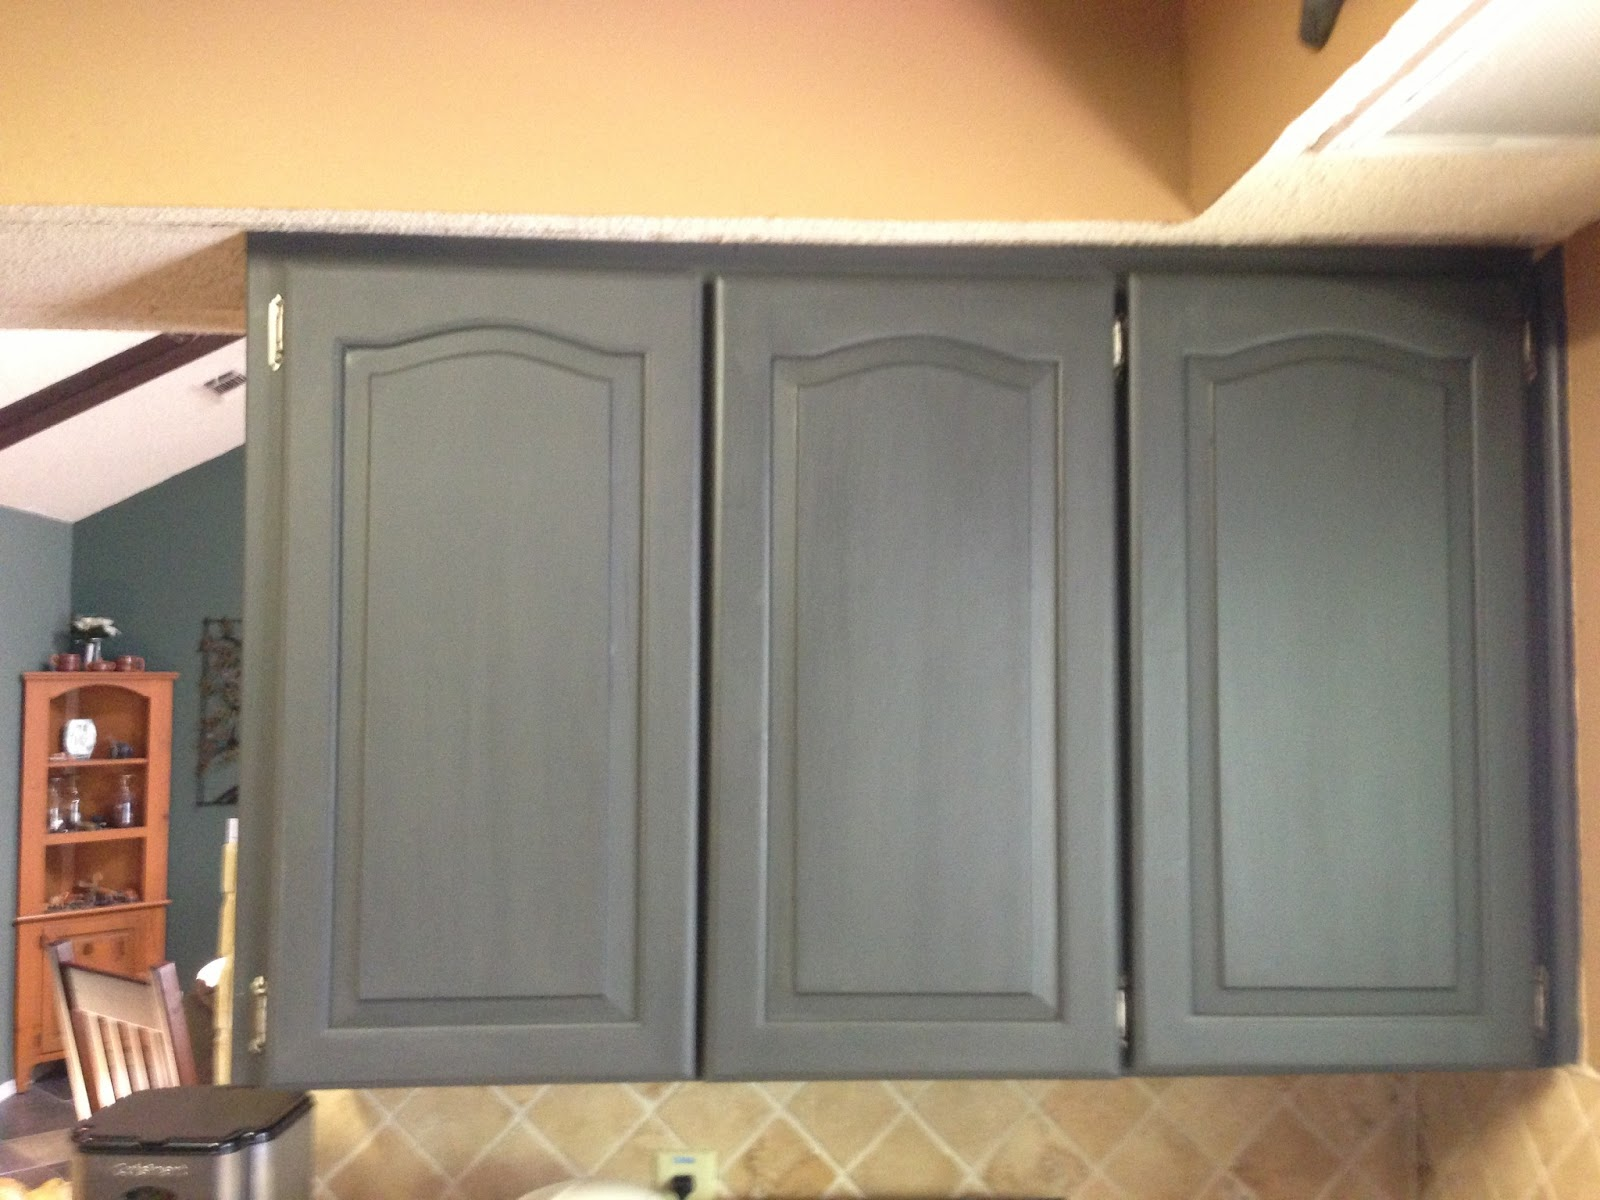 Chalk Paint Kitchen Cabinets Wilker Do 39s Using Chalk Paint To Refinish Kitchen Cabinets